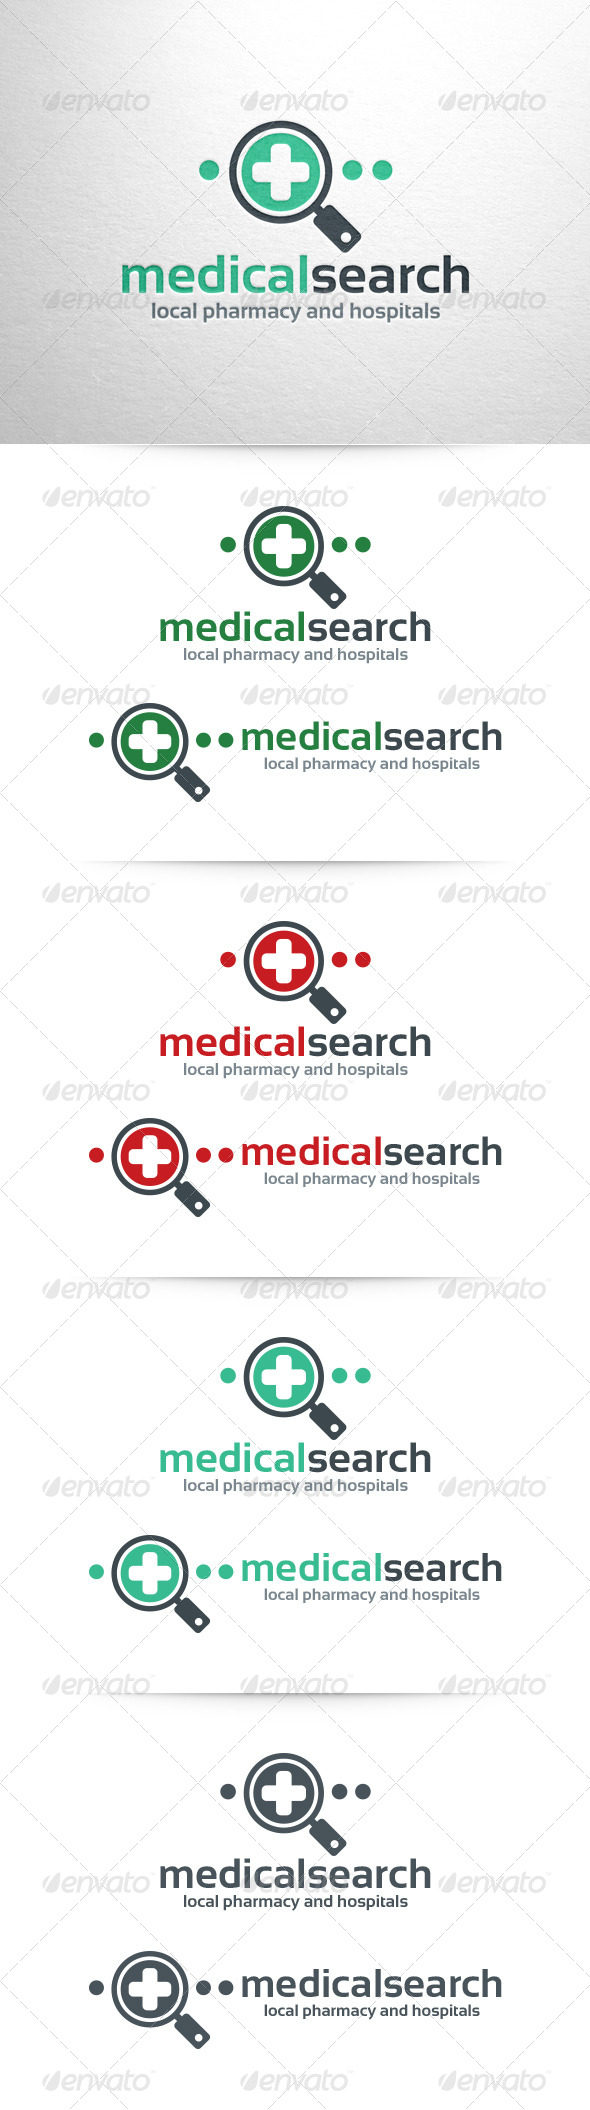 GraphicRiver Medical Search Logo Template 6483114